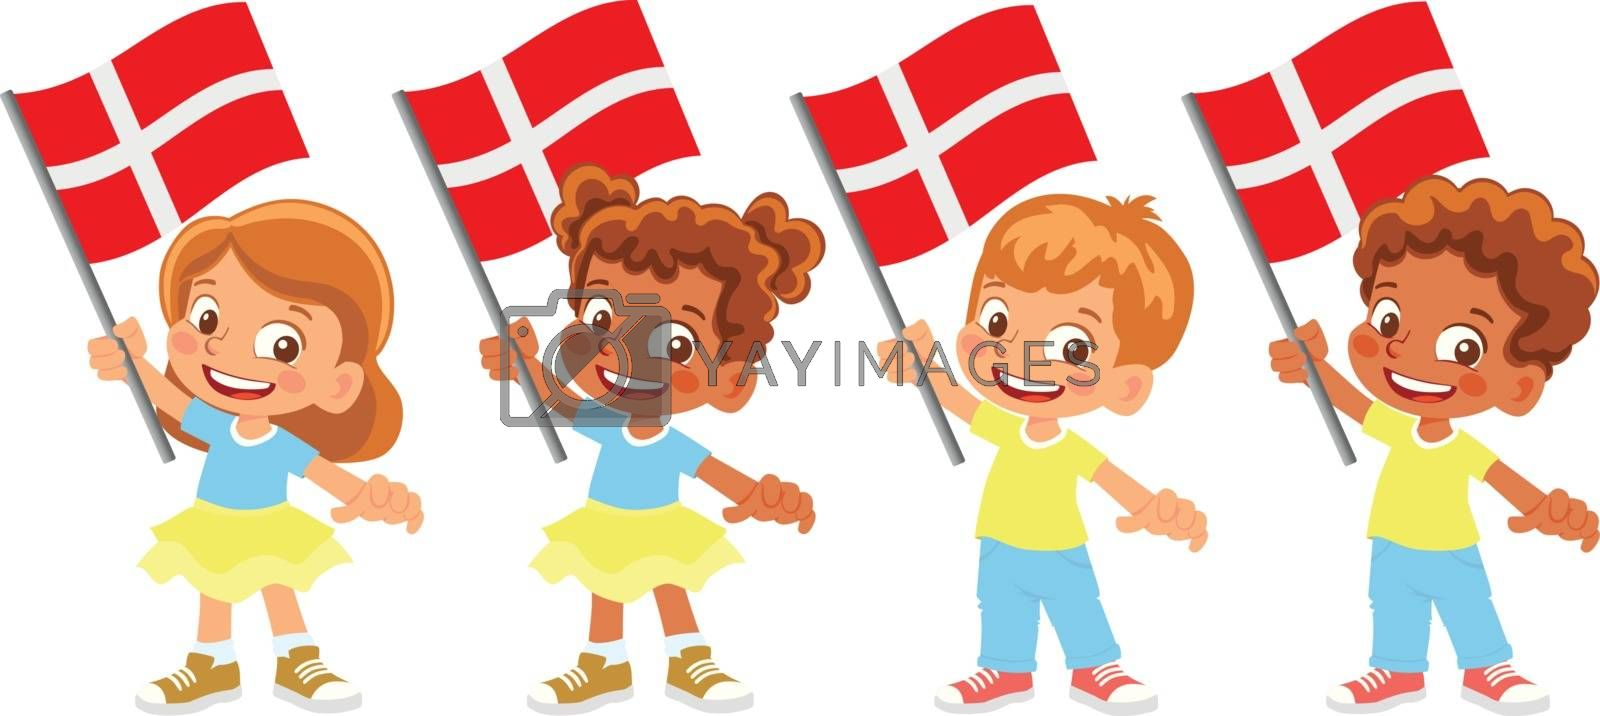 Denmark flag in hand. Children holding flag. National flag of Denmark vector